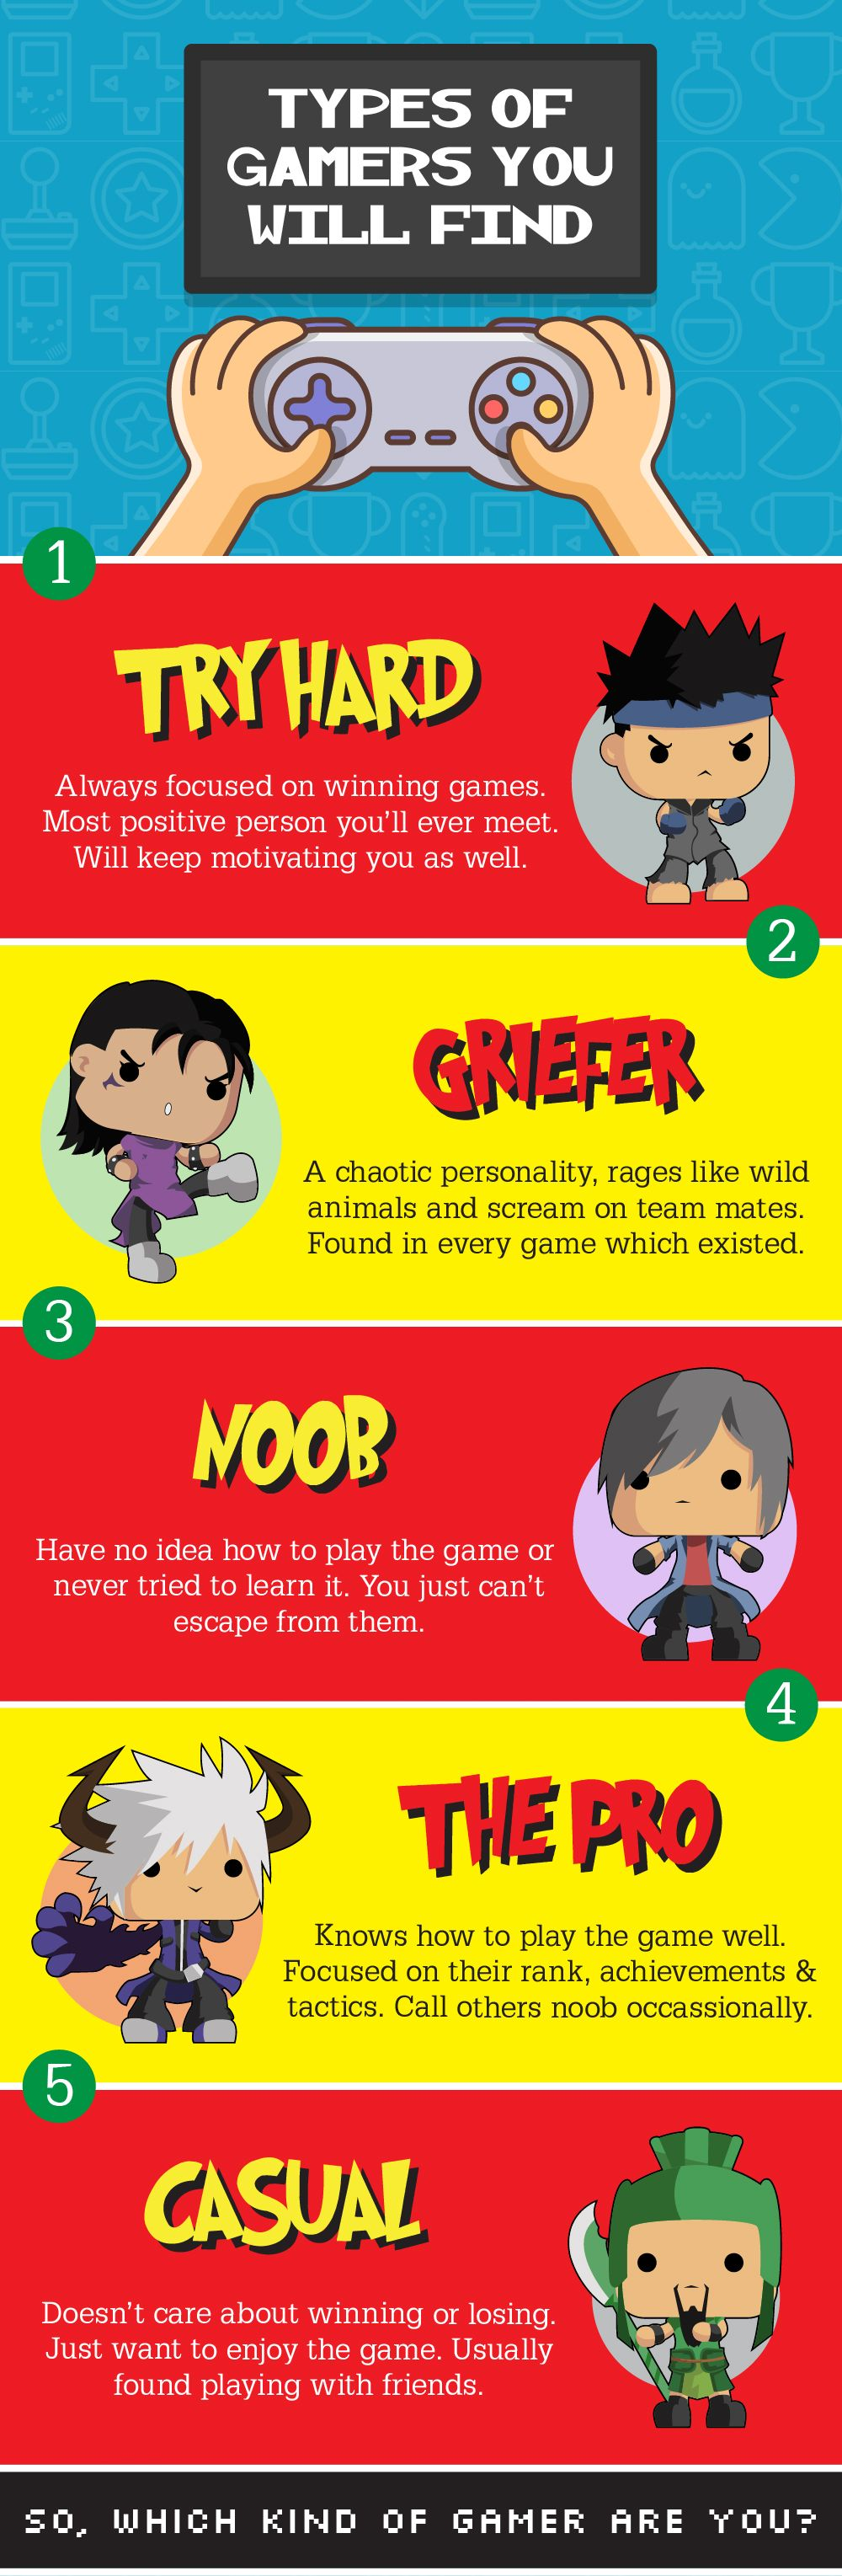 Types of gamers you will find in online gaming